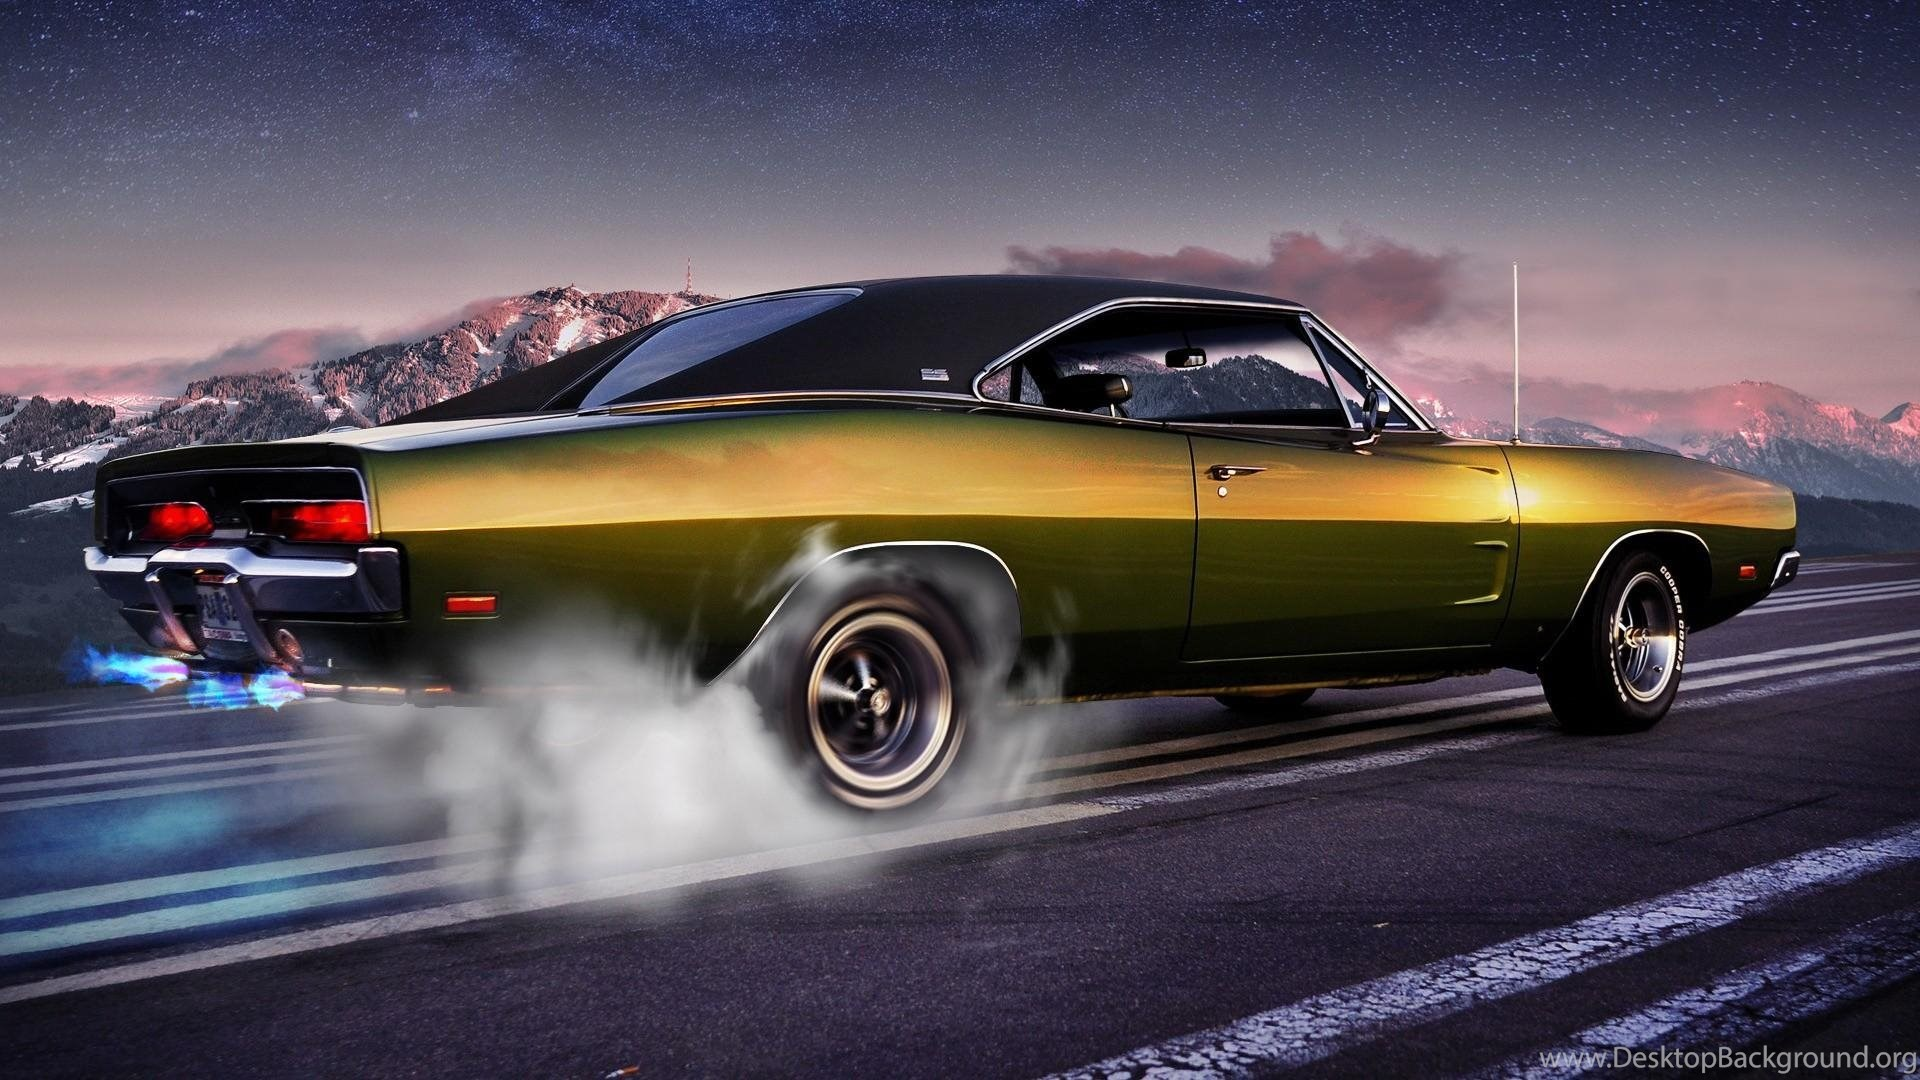 Muscle Car Burnout Iphone Wallpapers 9130 Amazing Wallpaperz Desktop